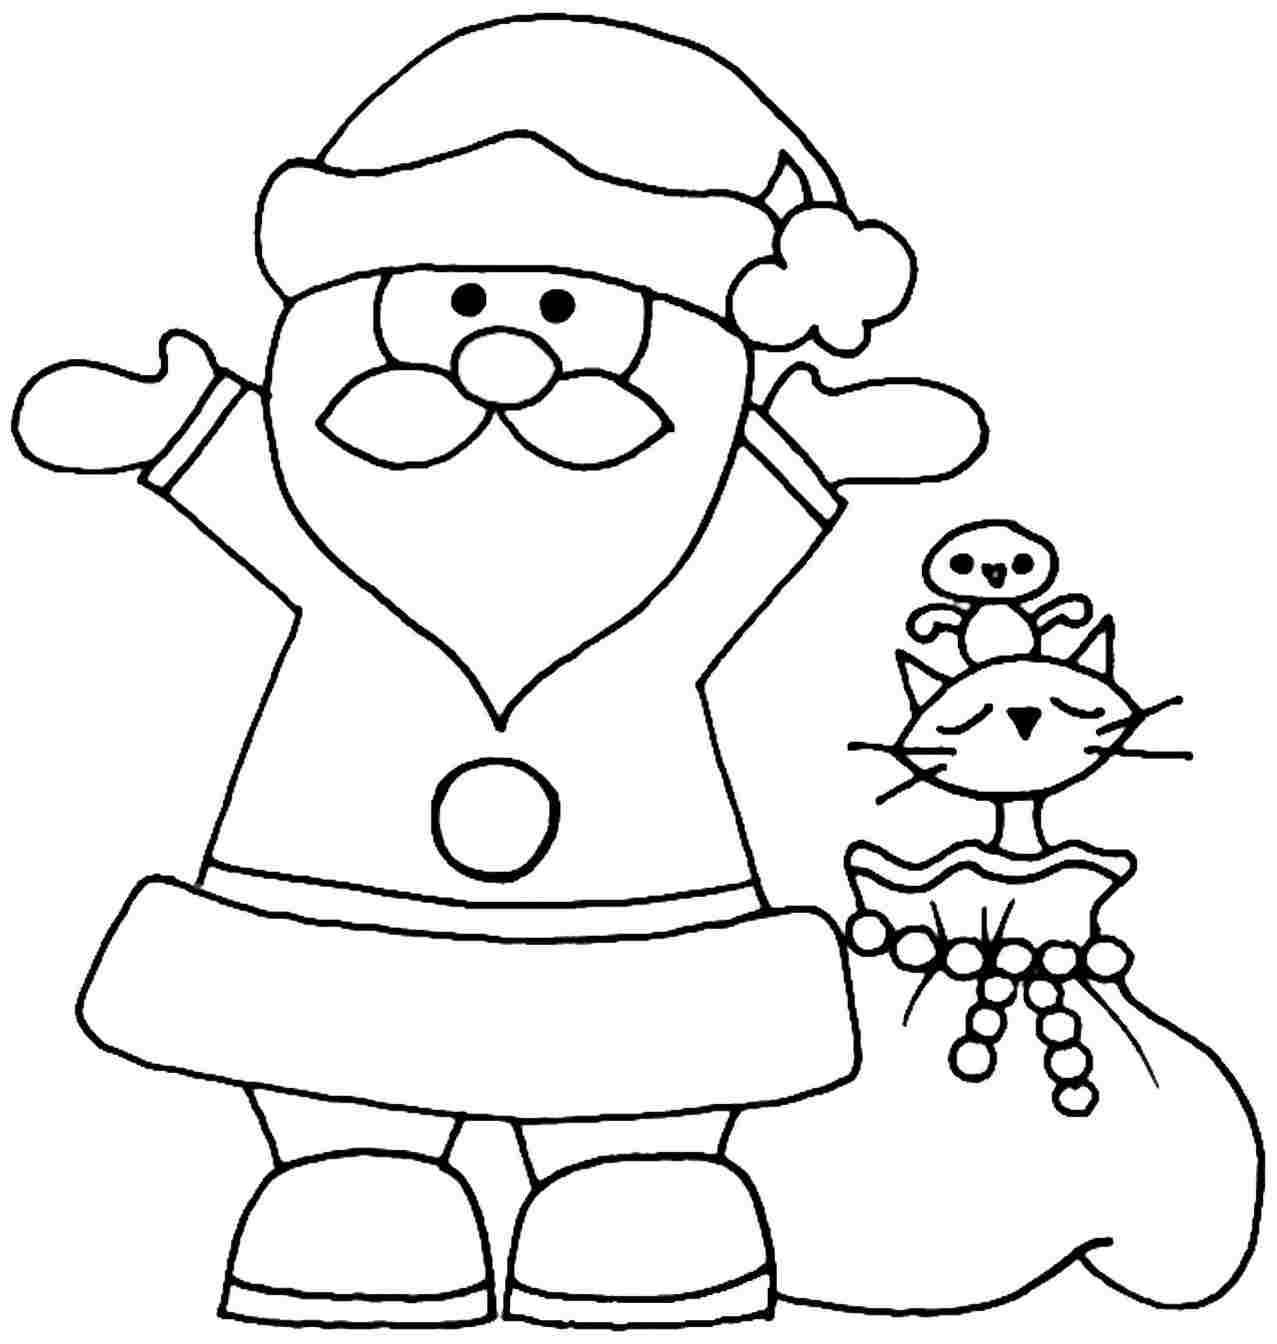 Simple Santa Drawing at GetDrawings.com | Free for personal use ...